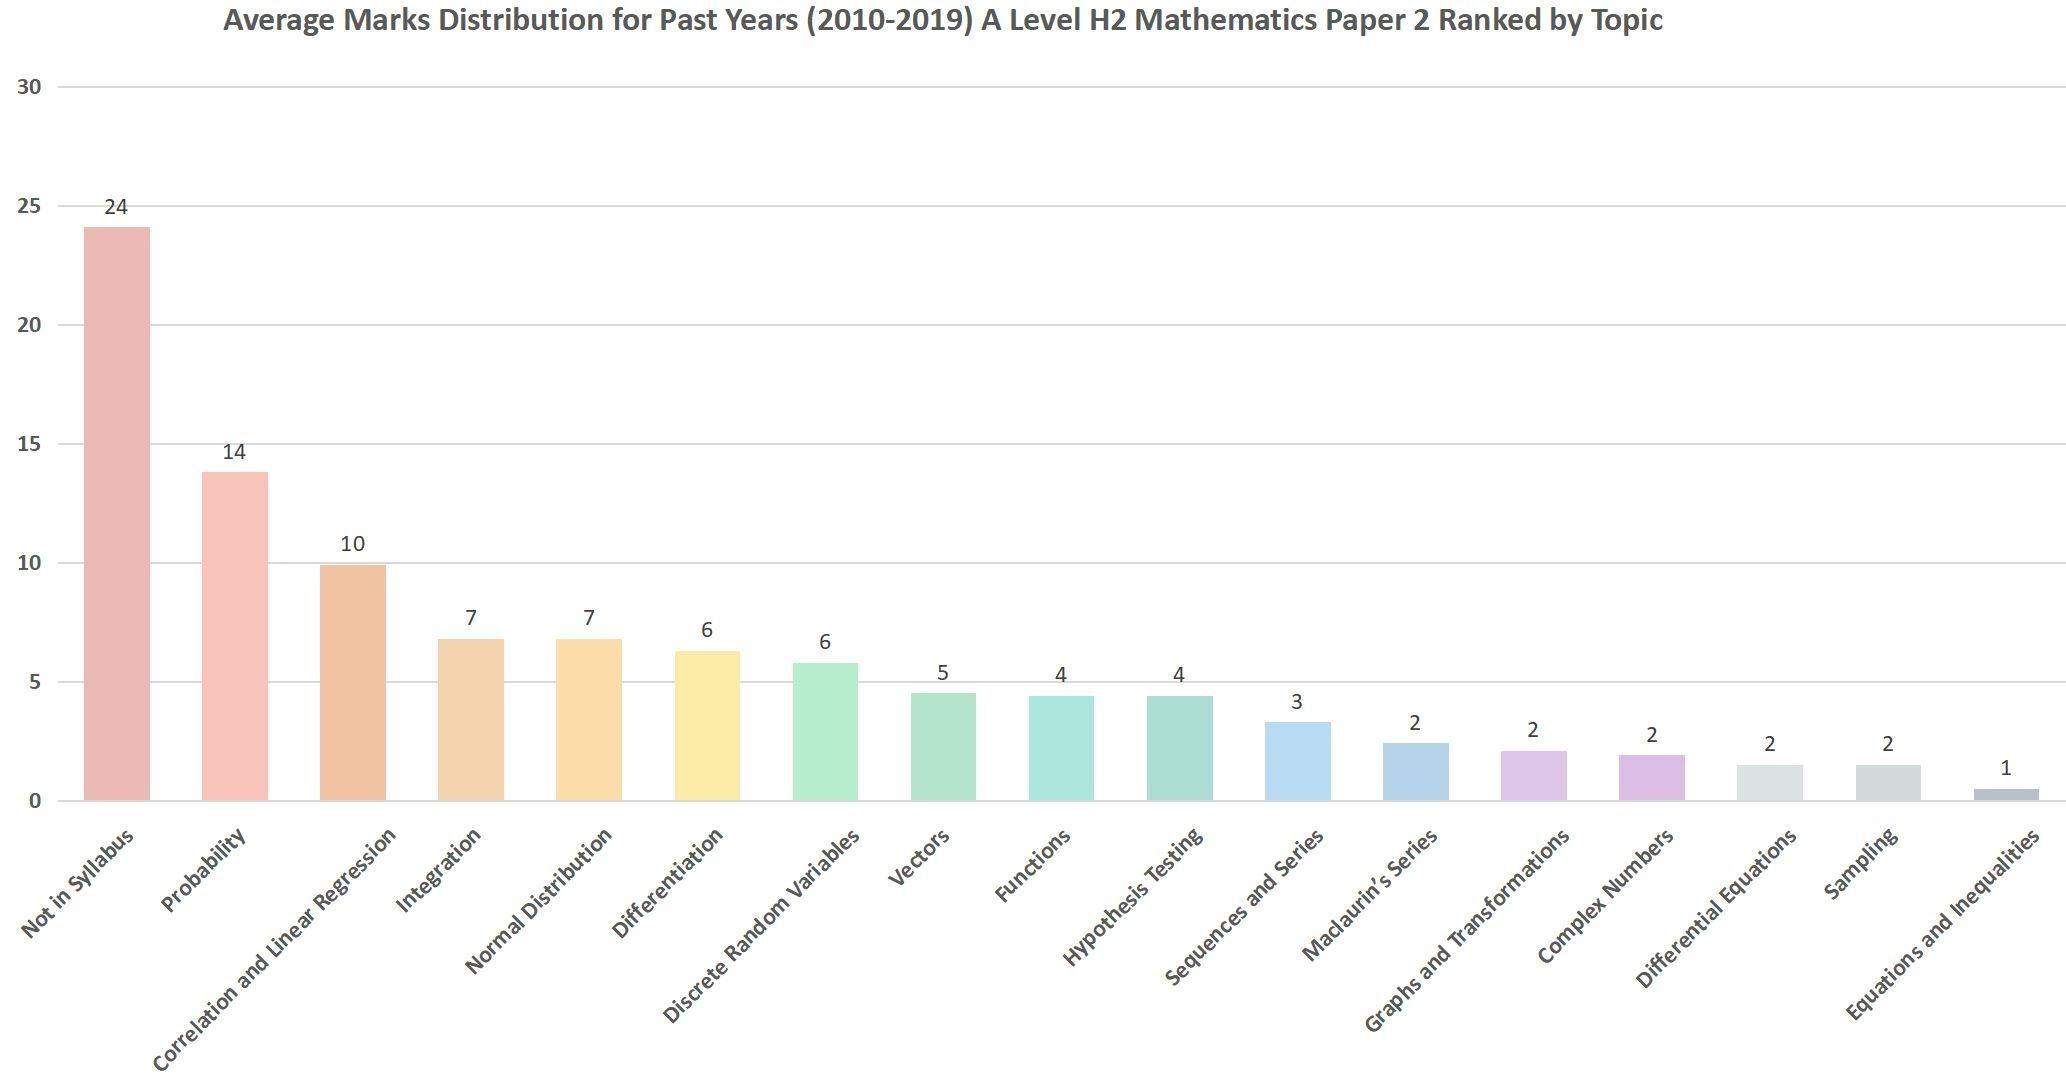 A Level Past Paper Math Paper 2 Ranked Average Marks